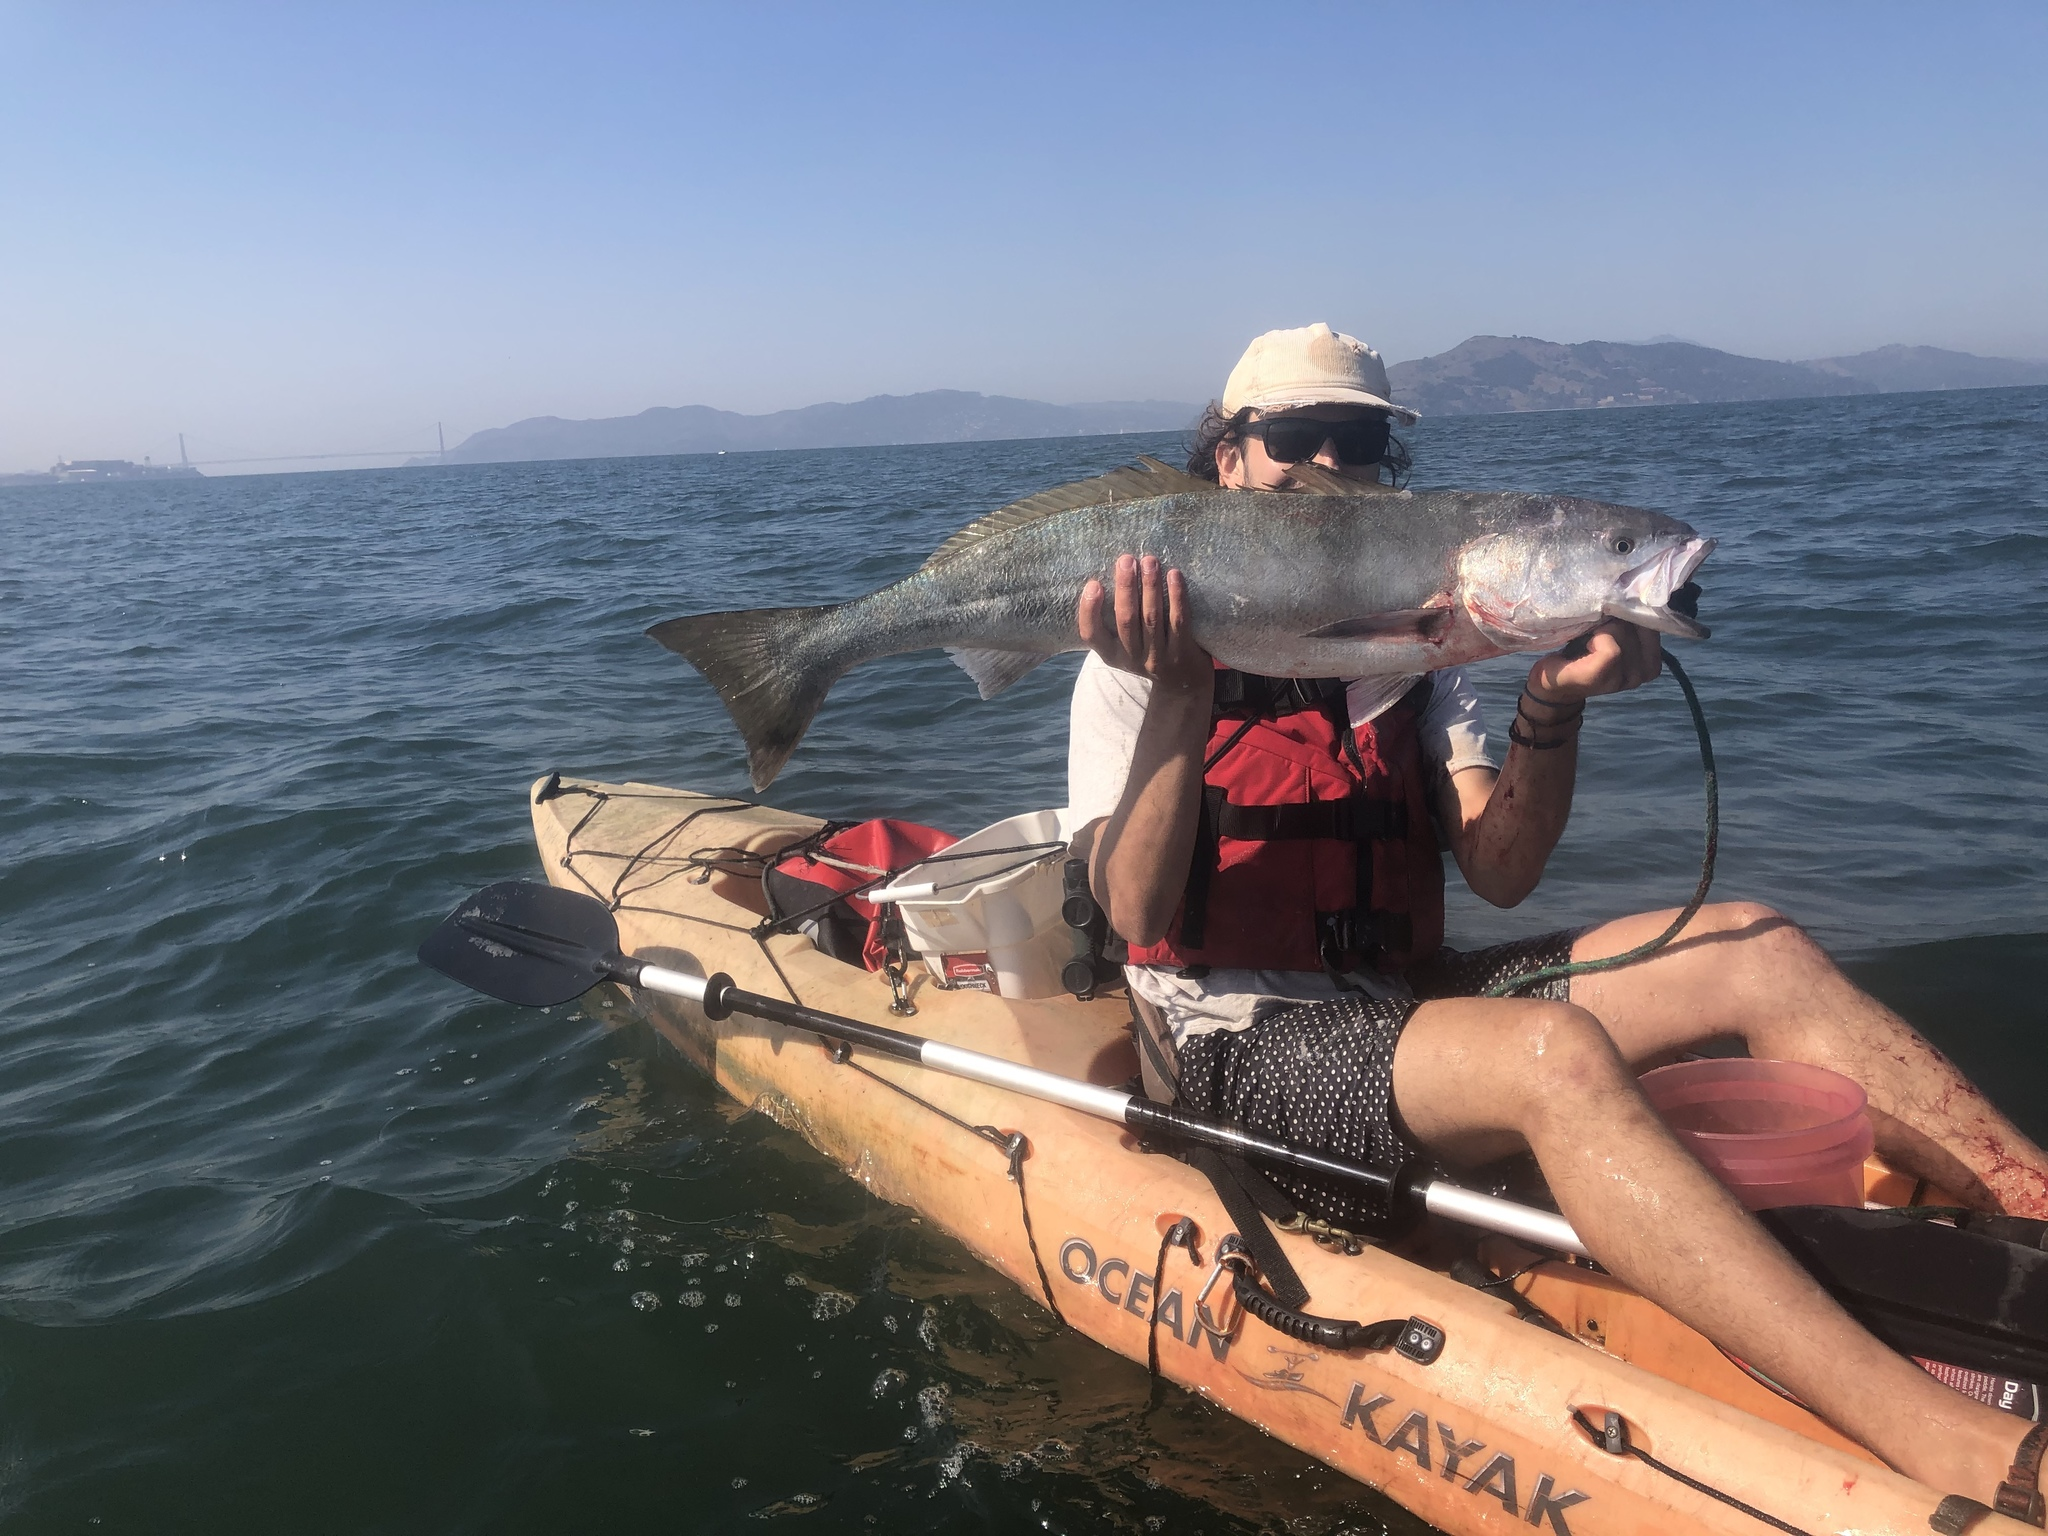 person sitting on an ocean kayak holding up a large white seabass